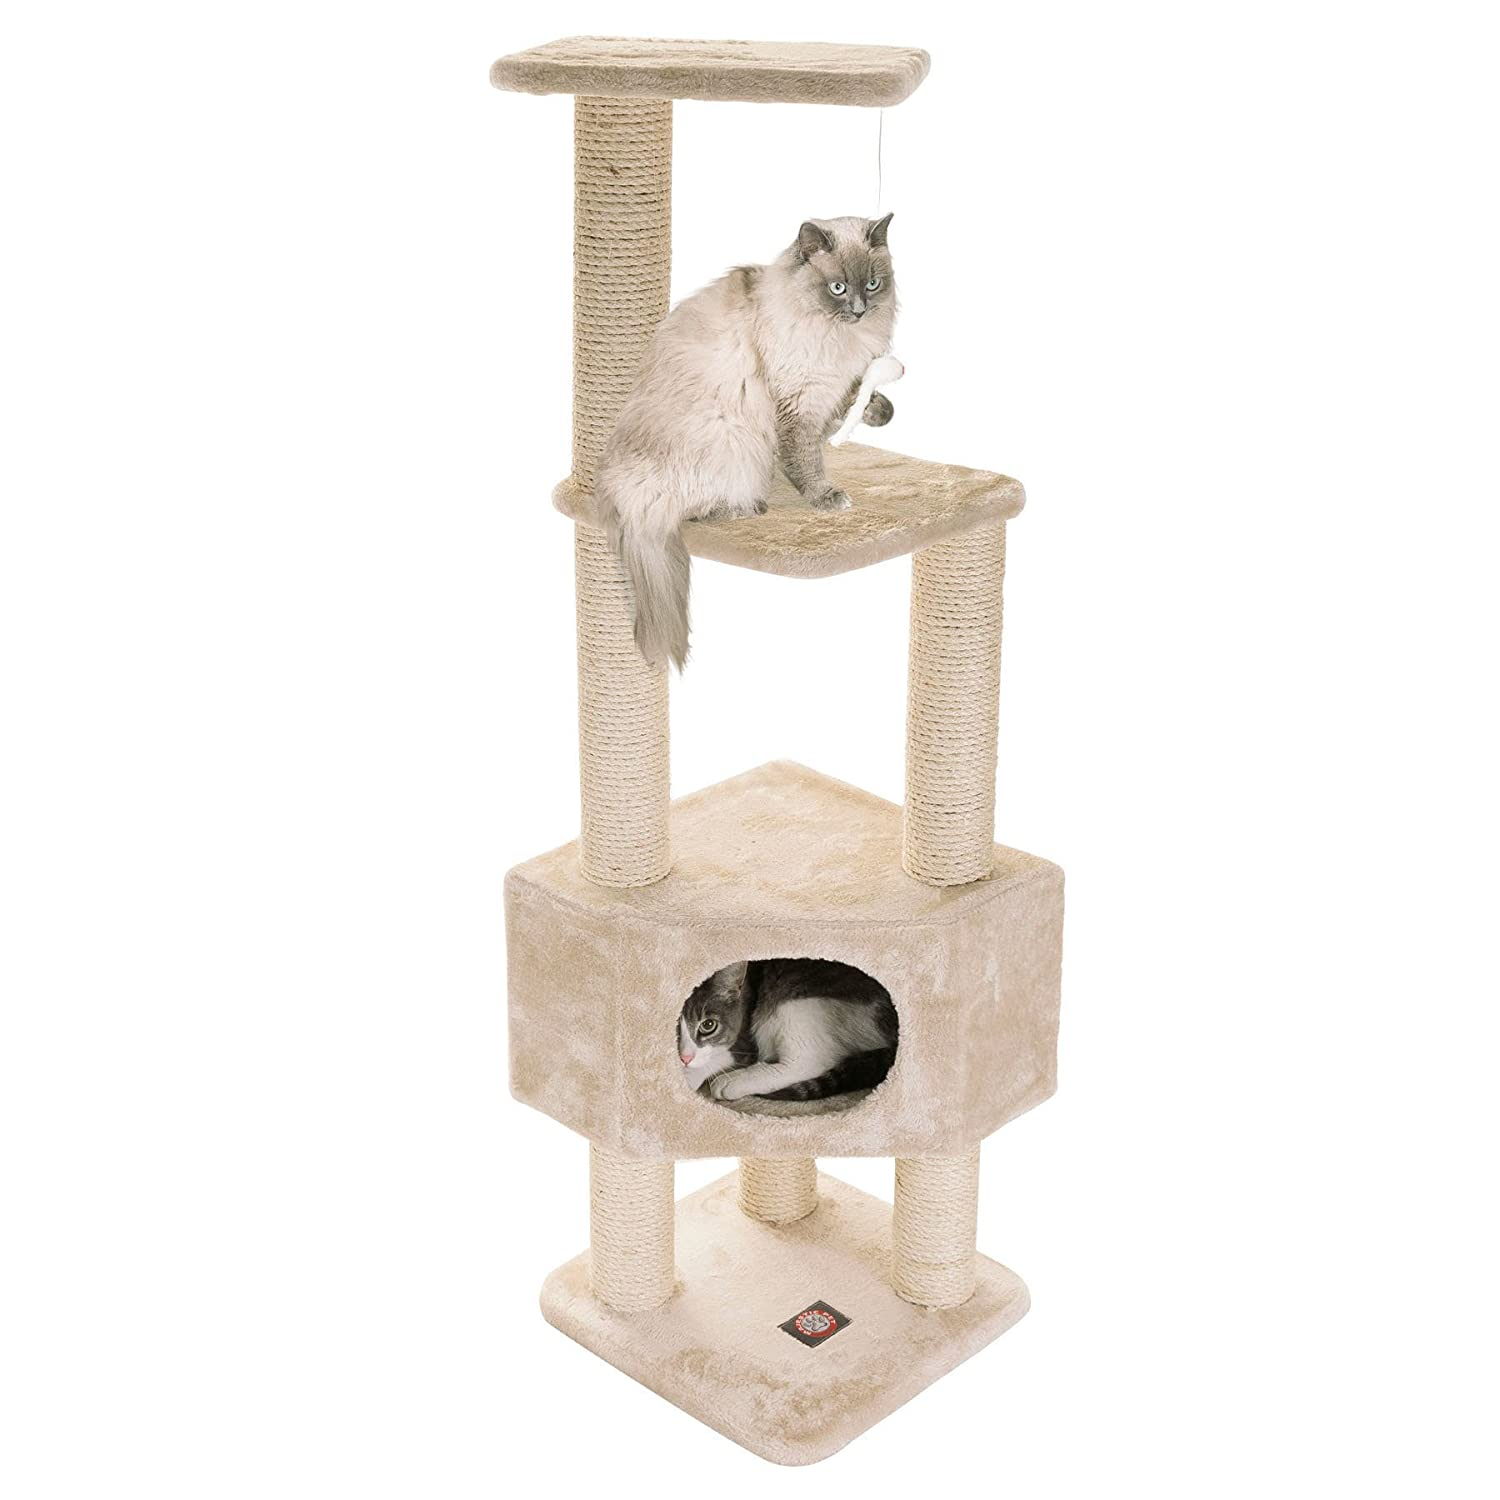 Superb Amazon.com : Majestic Pet Products 52 Inch Cat Tree Furniture Tower Condo  House With Scratching Post, Multi Level Activity Pet Tree (Beige Casita) :  Cat ...